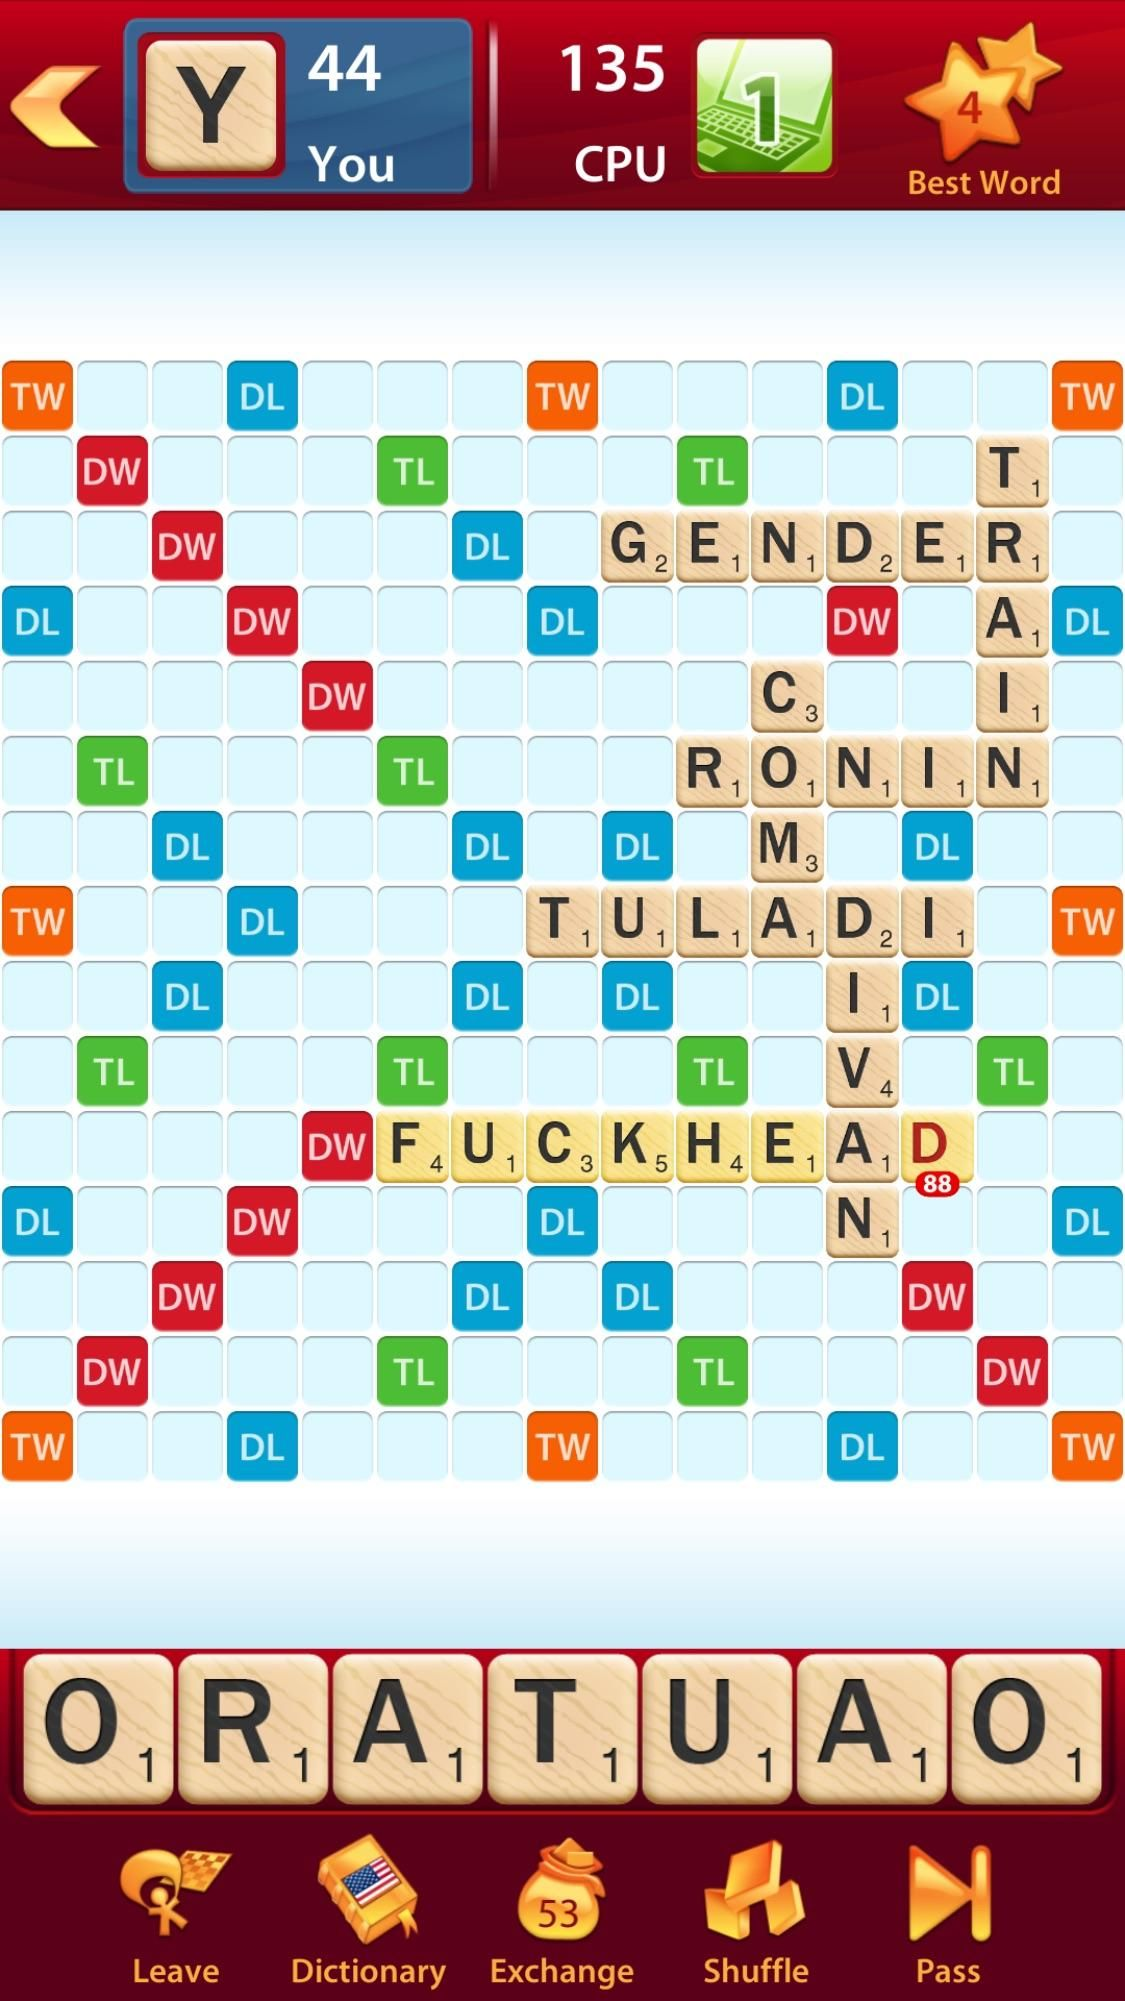 The scrabble app computer played a word not found in its